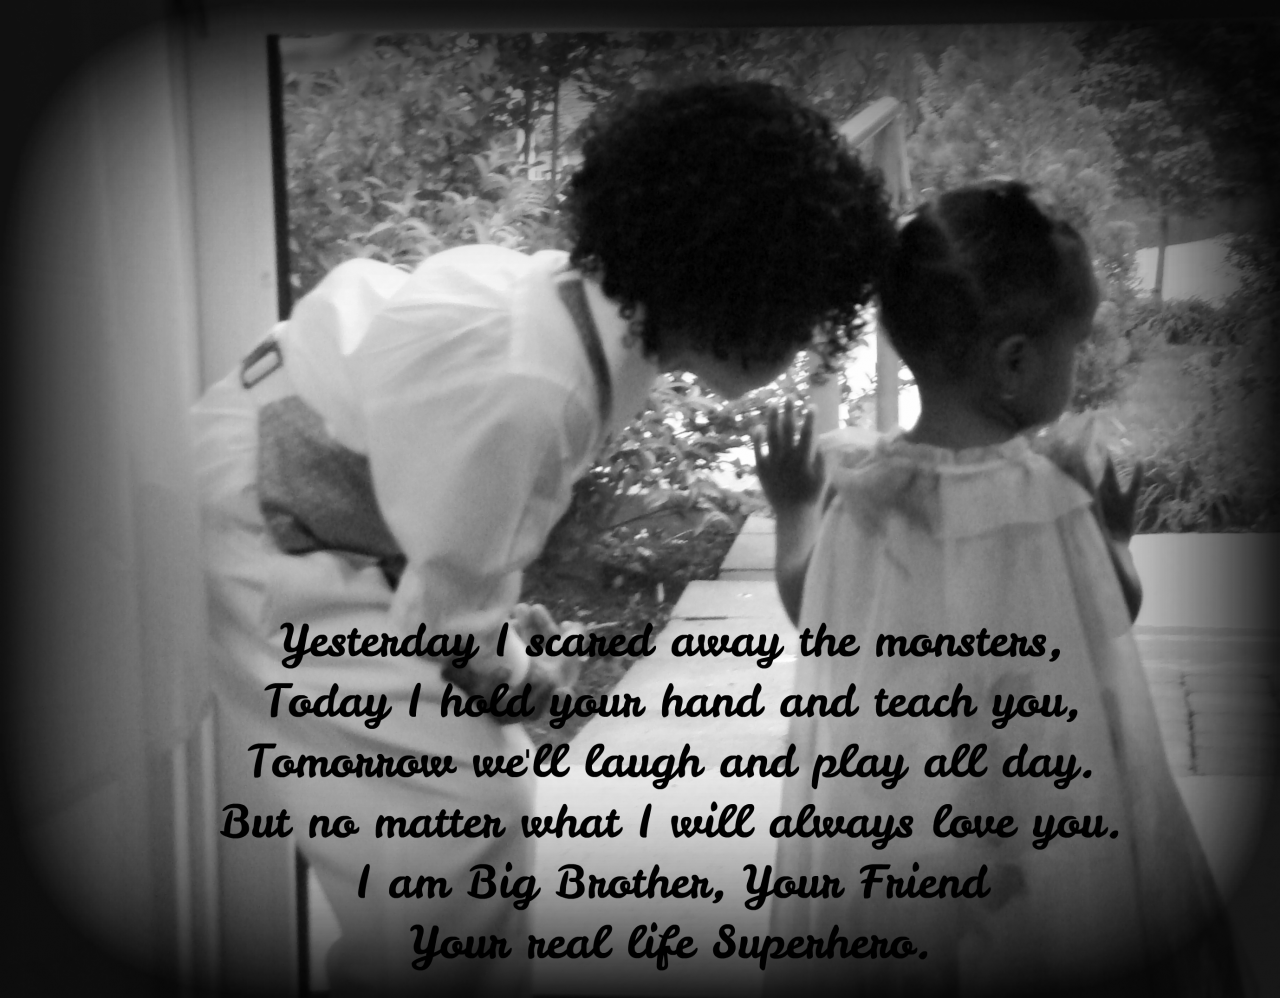 I Love My Brother And Sister Quotesbig Brother Little Sister Love Quotes Sibling Stuff For My Boy